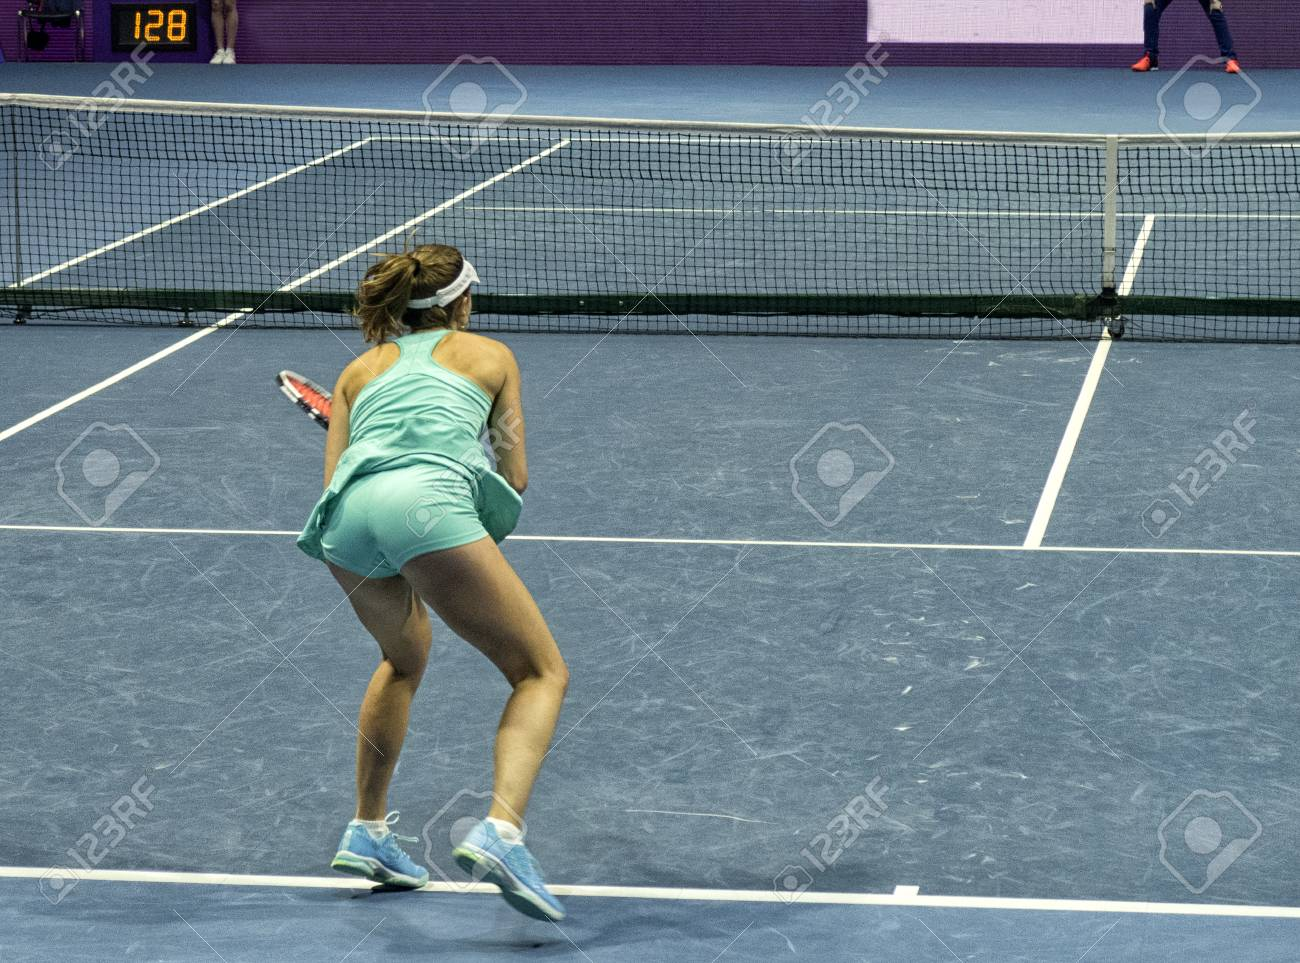 Young Woman Playing Tennis On A Court With An Artificial Surface